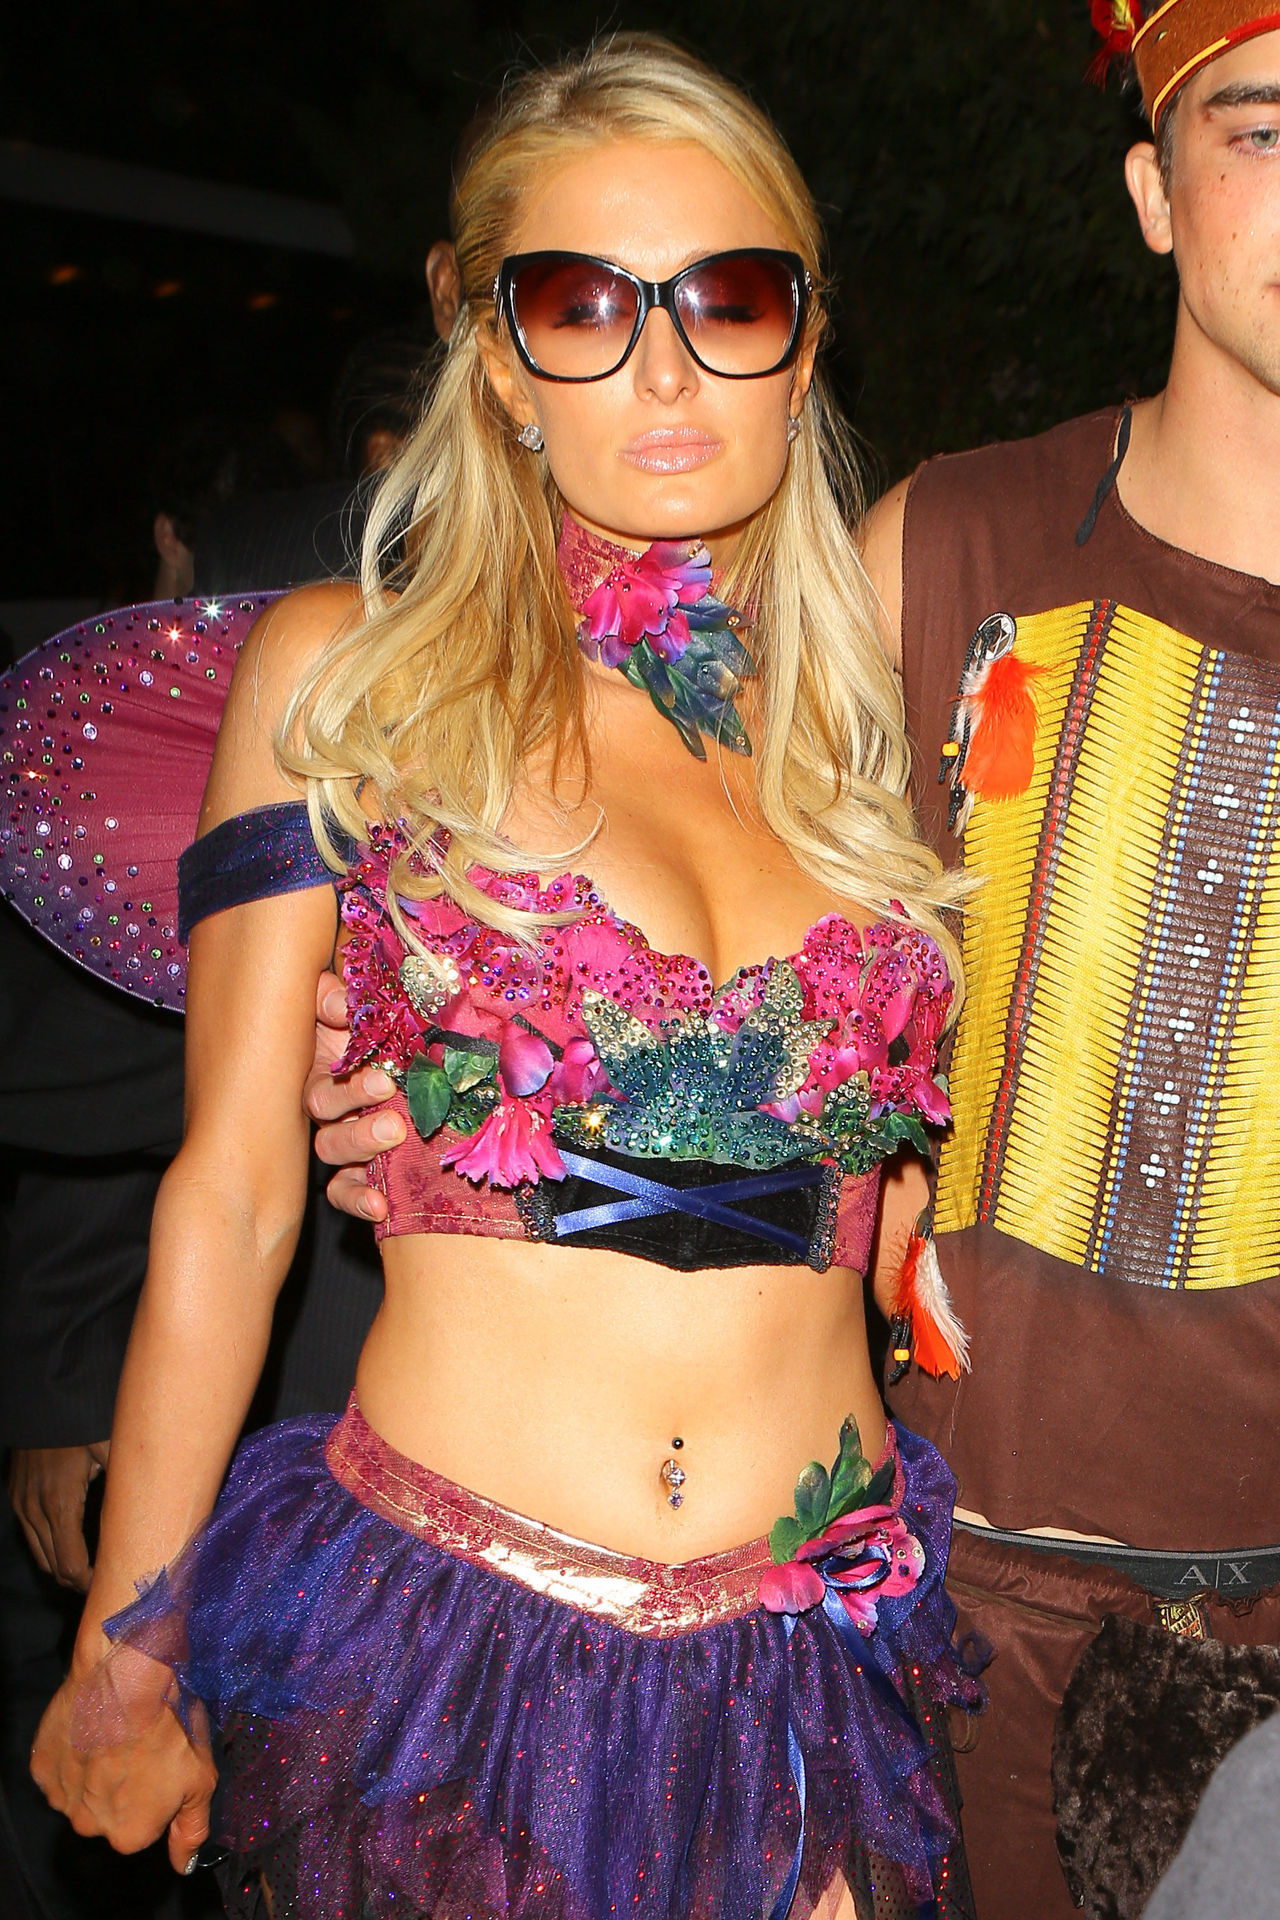 Paris Hilton at the Playboy Mansion Halloween Party in Los Angeles 10/27/12 More pics of Paris Hilton on SwaGirl.com